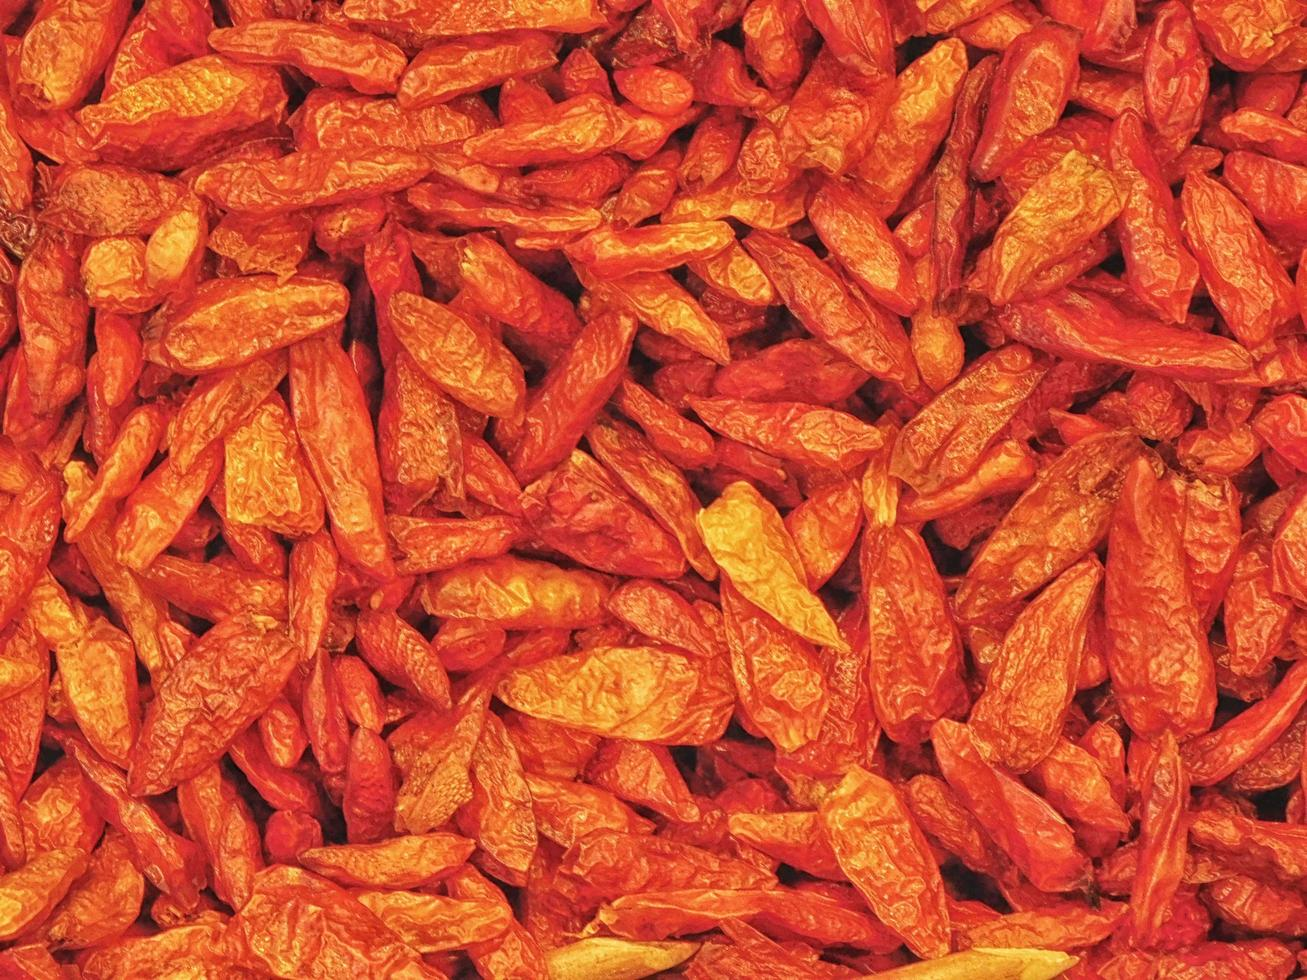 Close-up of chili peppers photo